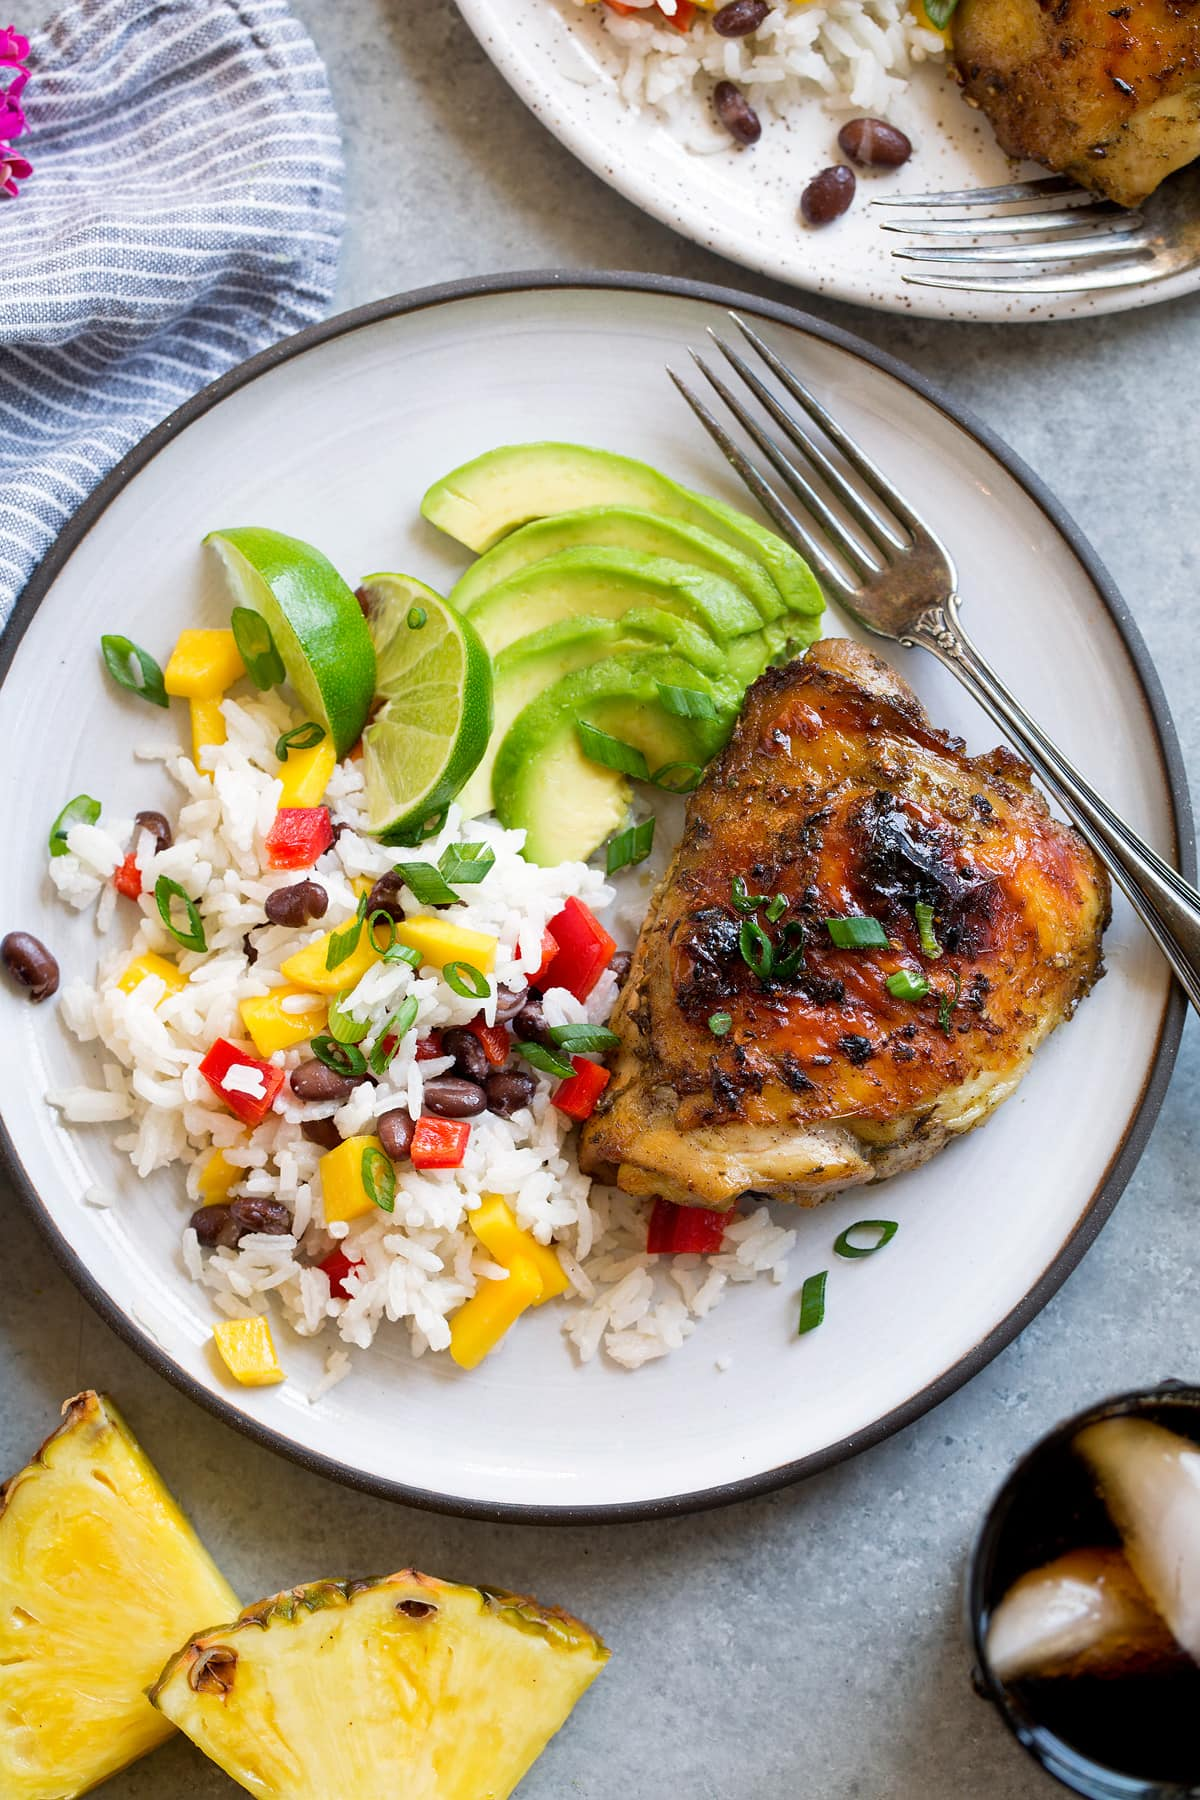 Single piece of jerk chicken with a side of coconut rice and avocado.